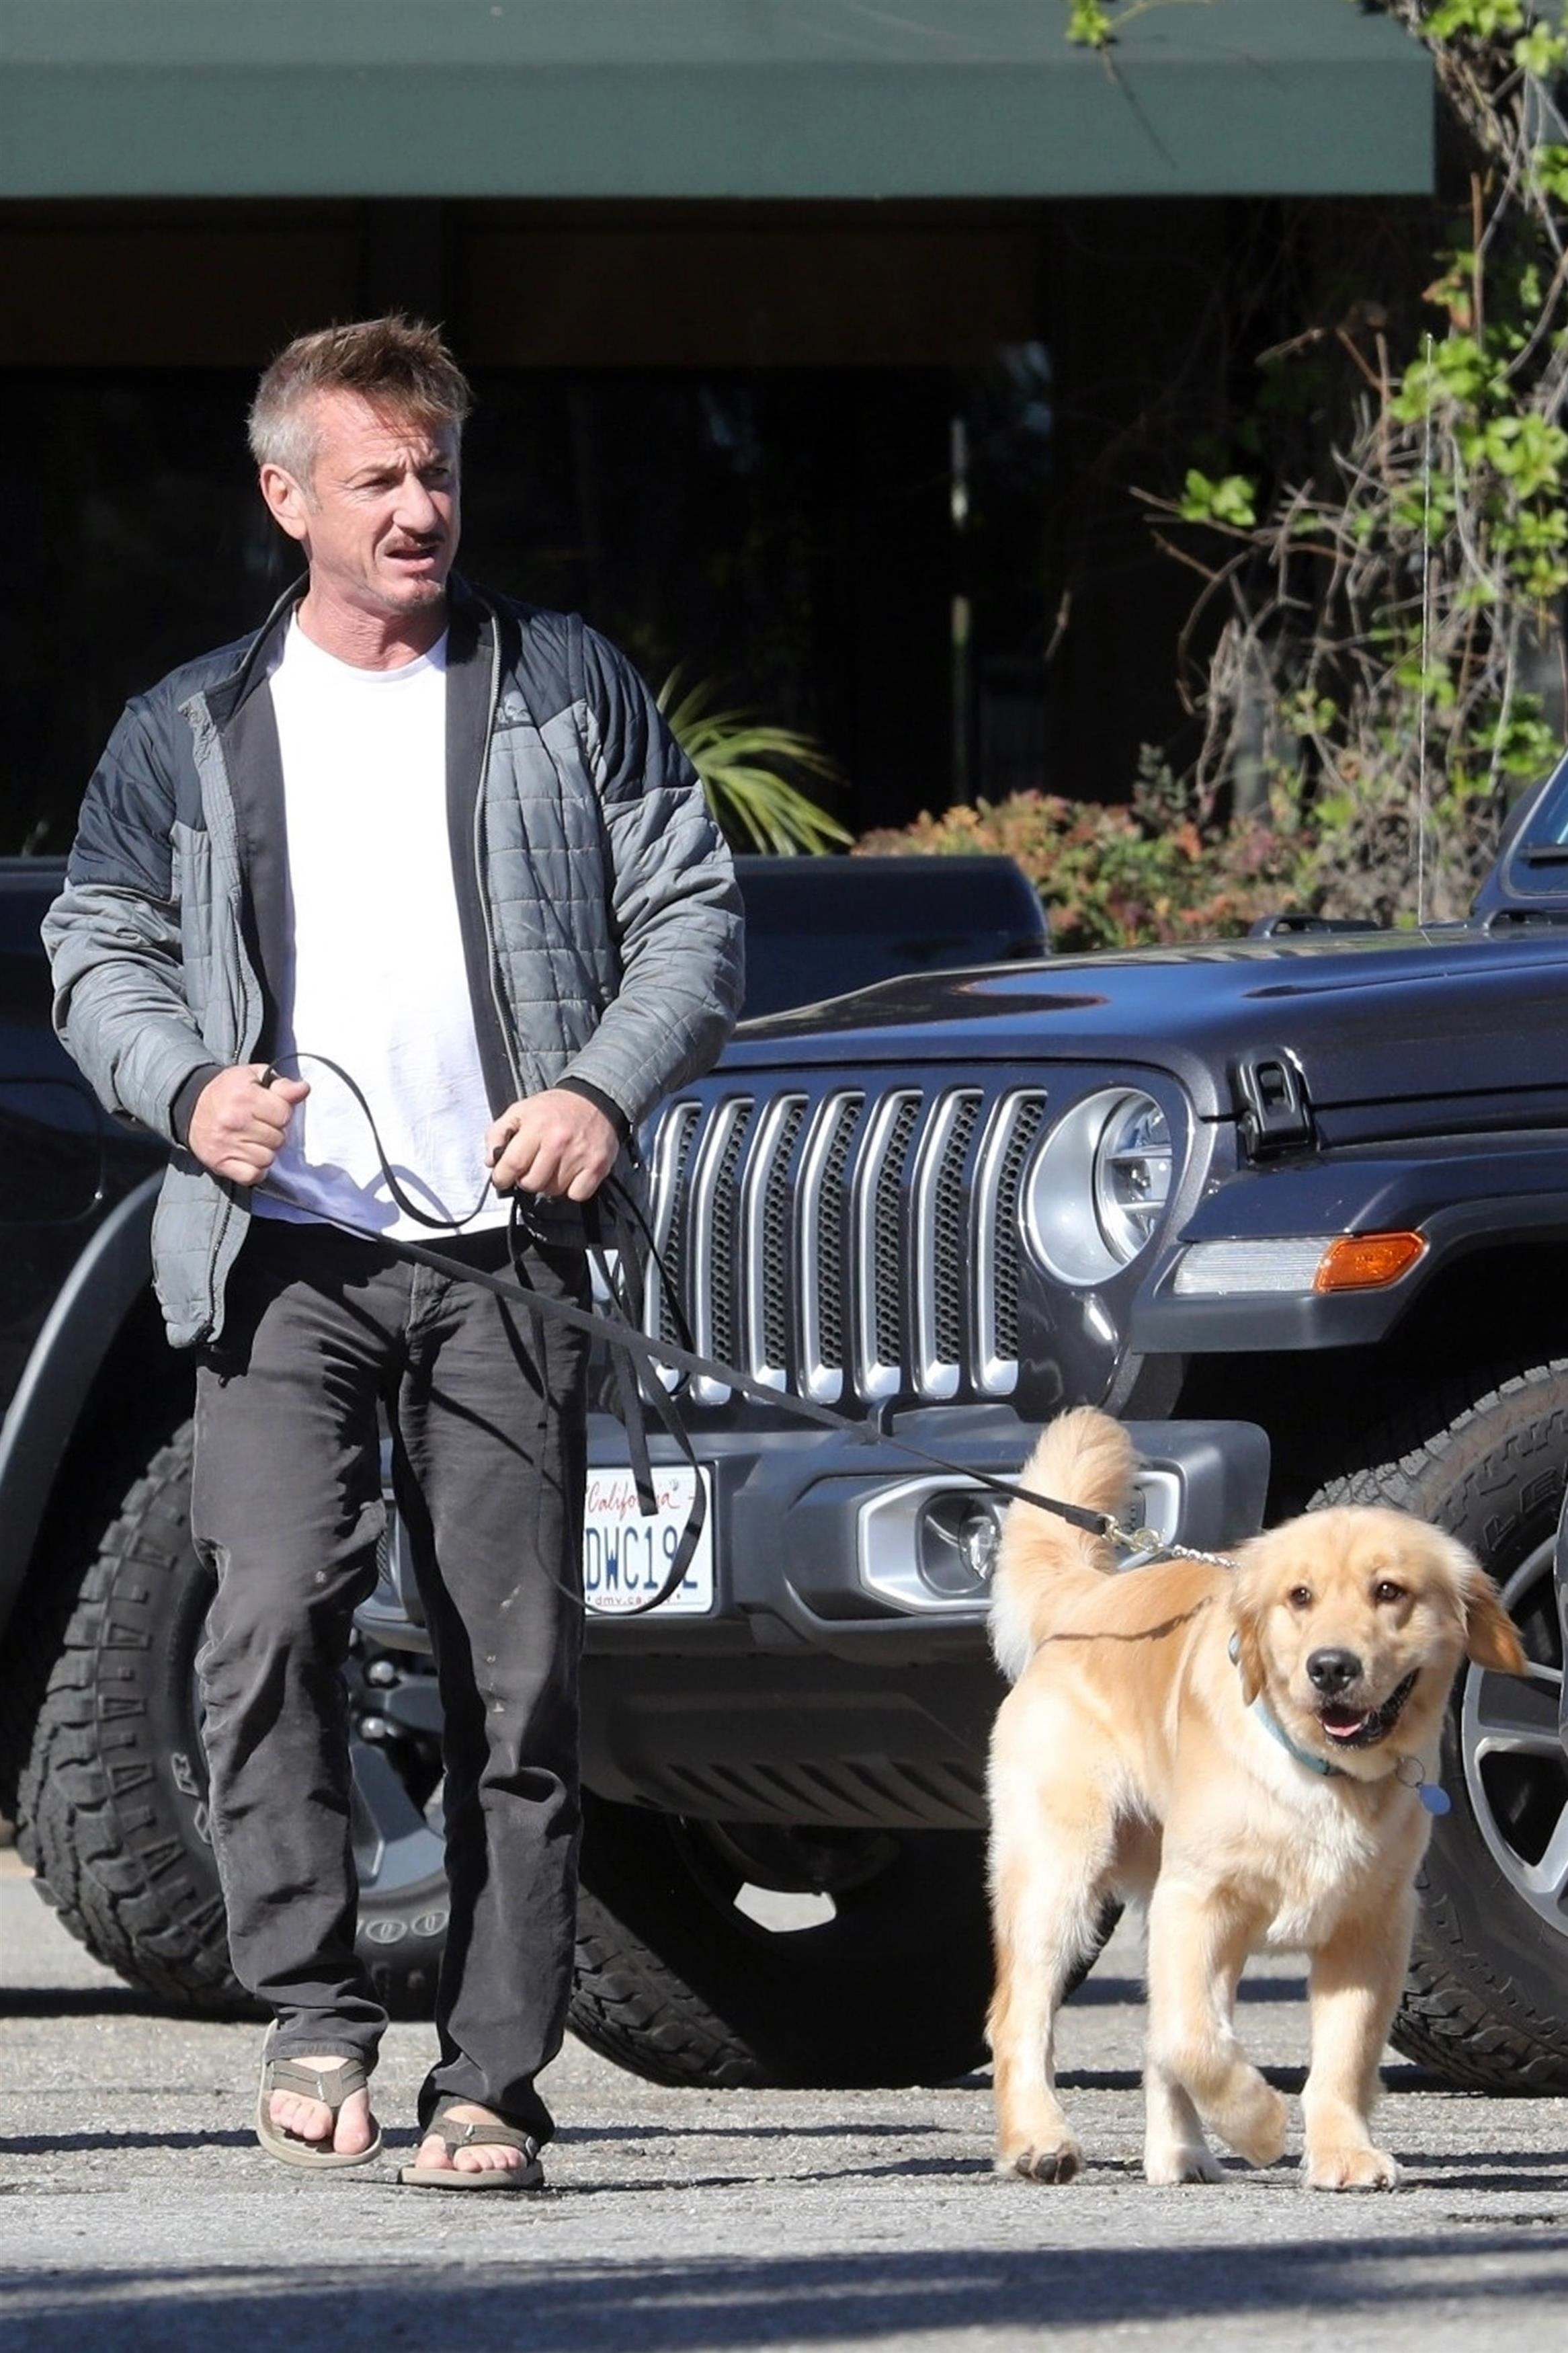 Sean Penn left brunch in Malibu's Point Dume area with his Golden Retriever on Jan. 19, 2019.